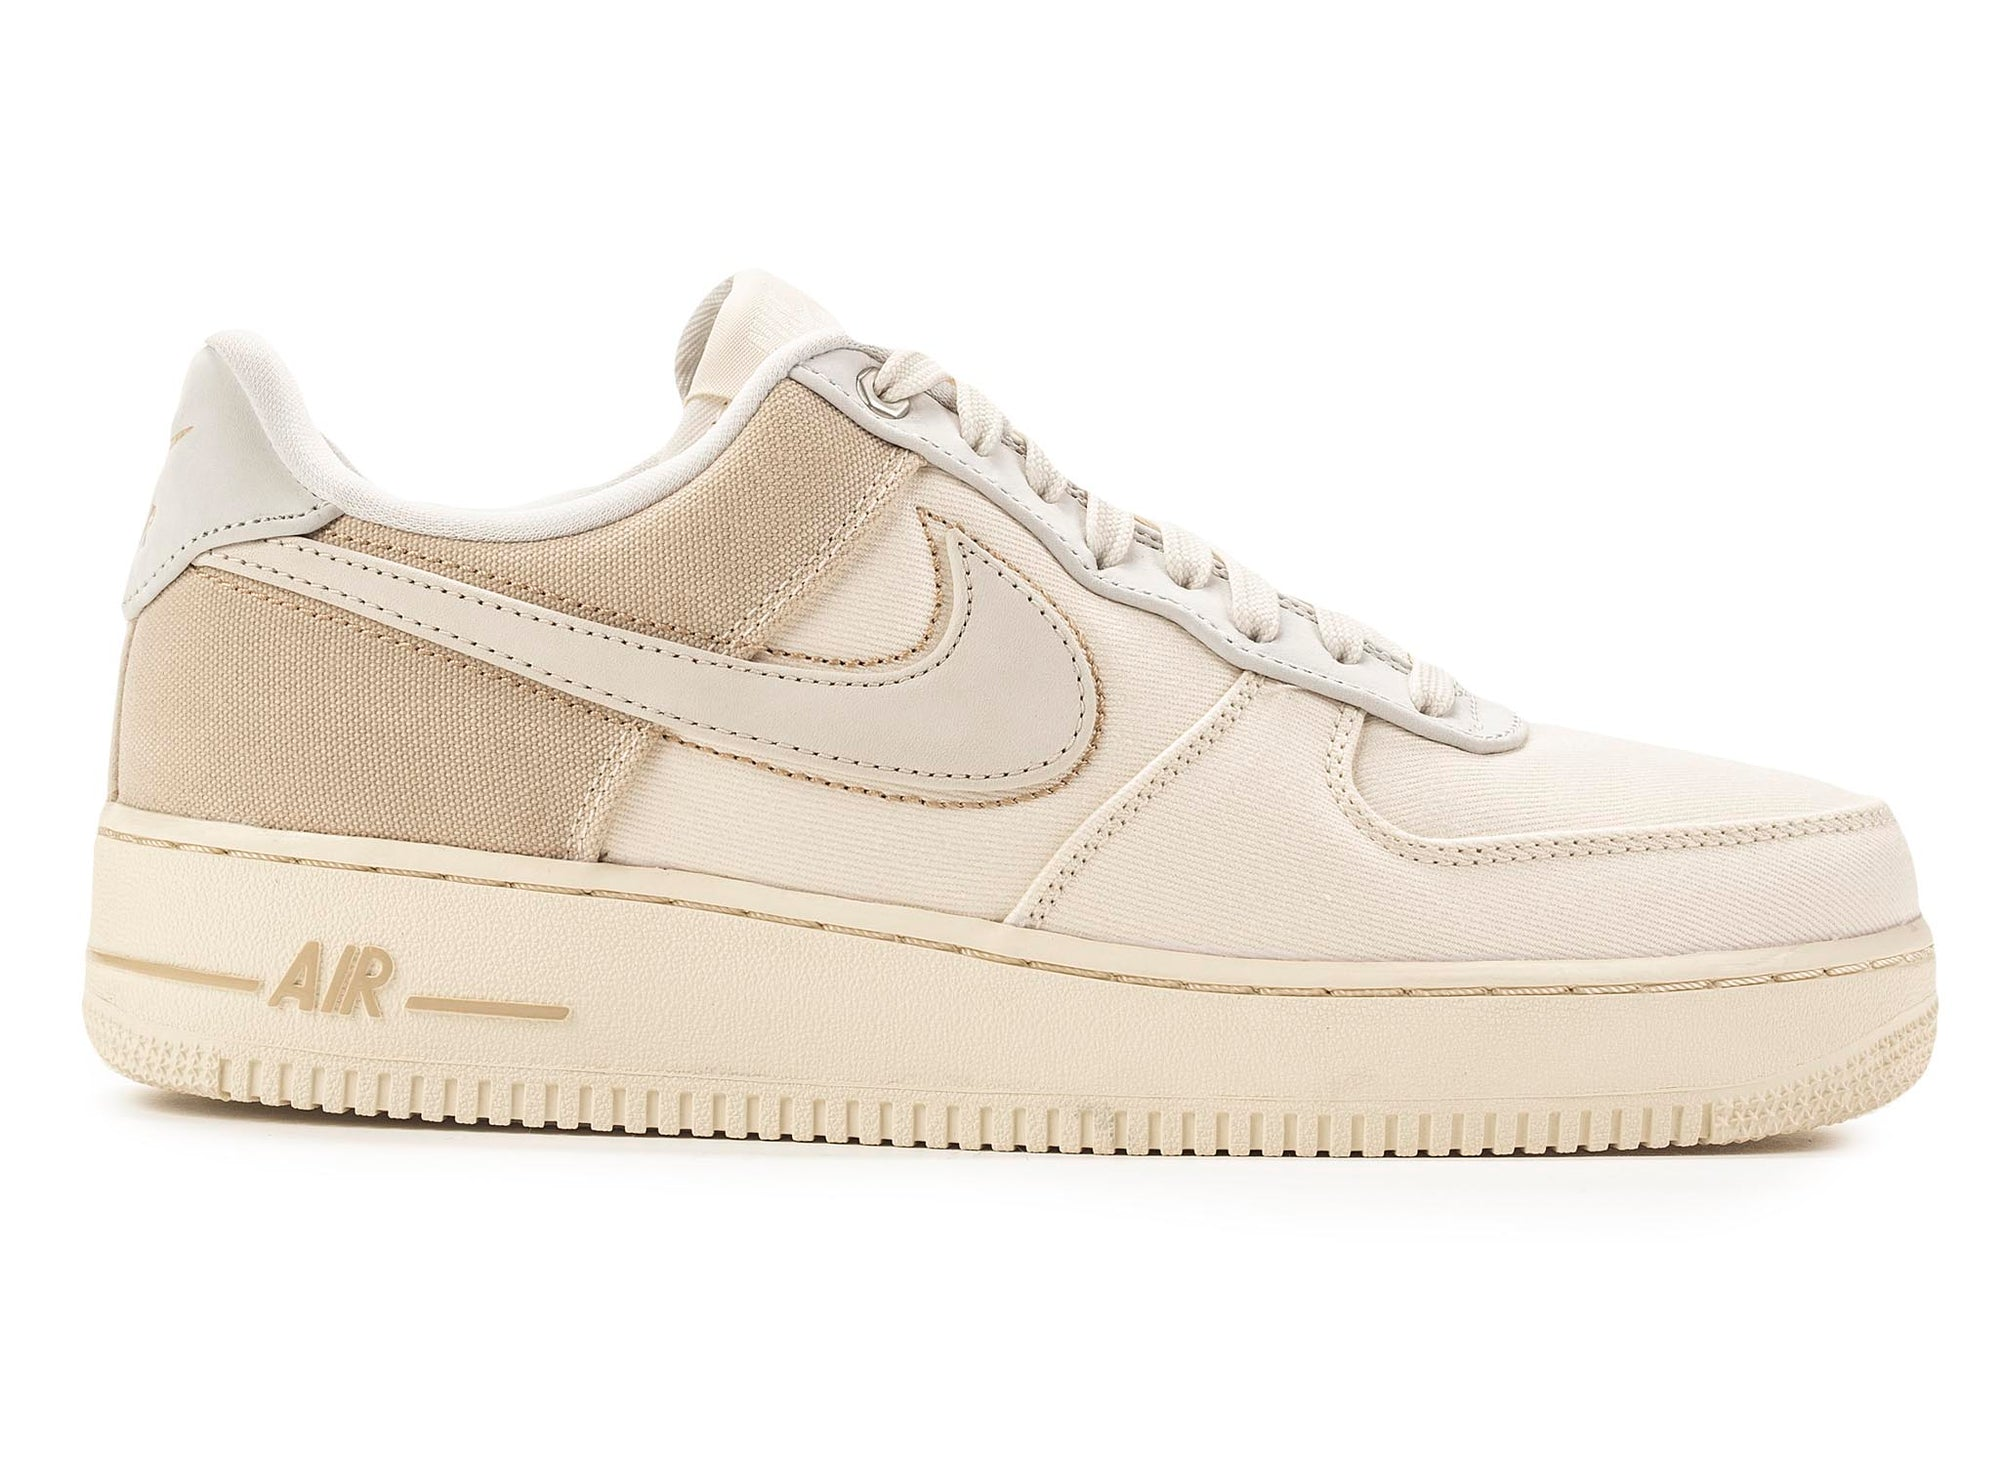 Nike Air Force 1 '07 Premium 'Pale Ivory' Oneness Boutique